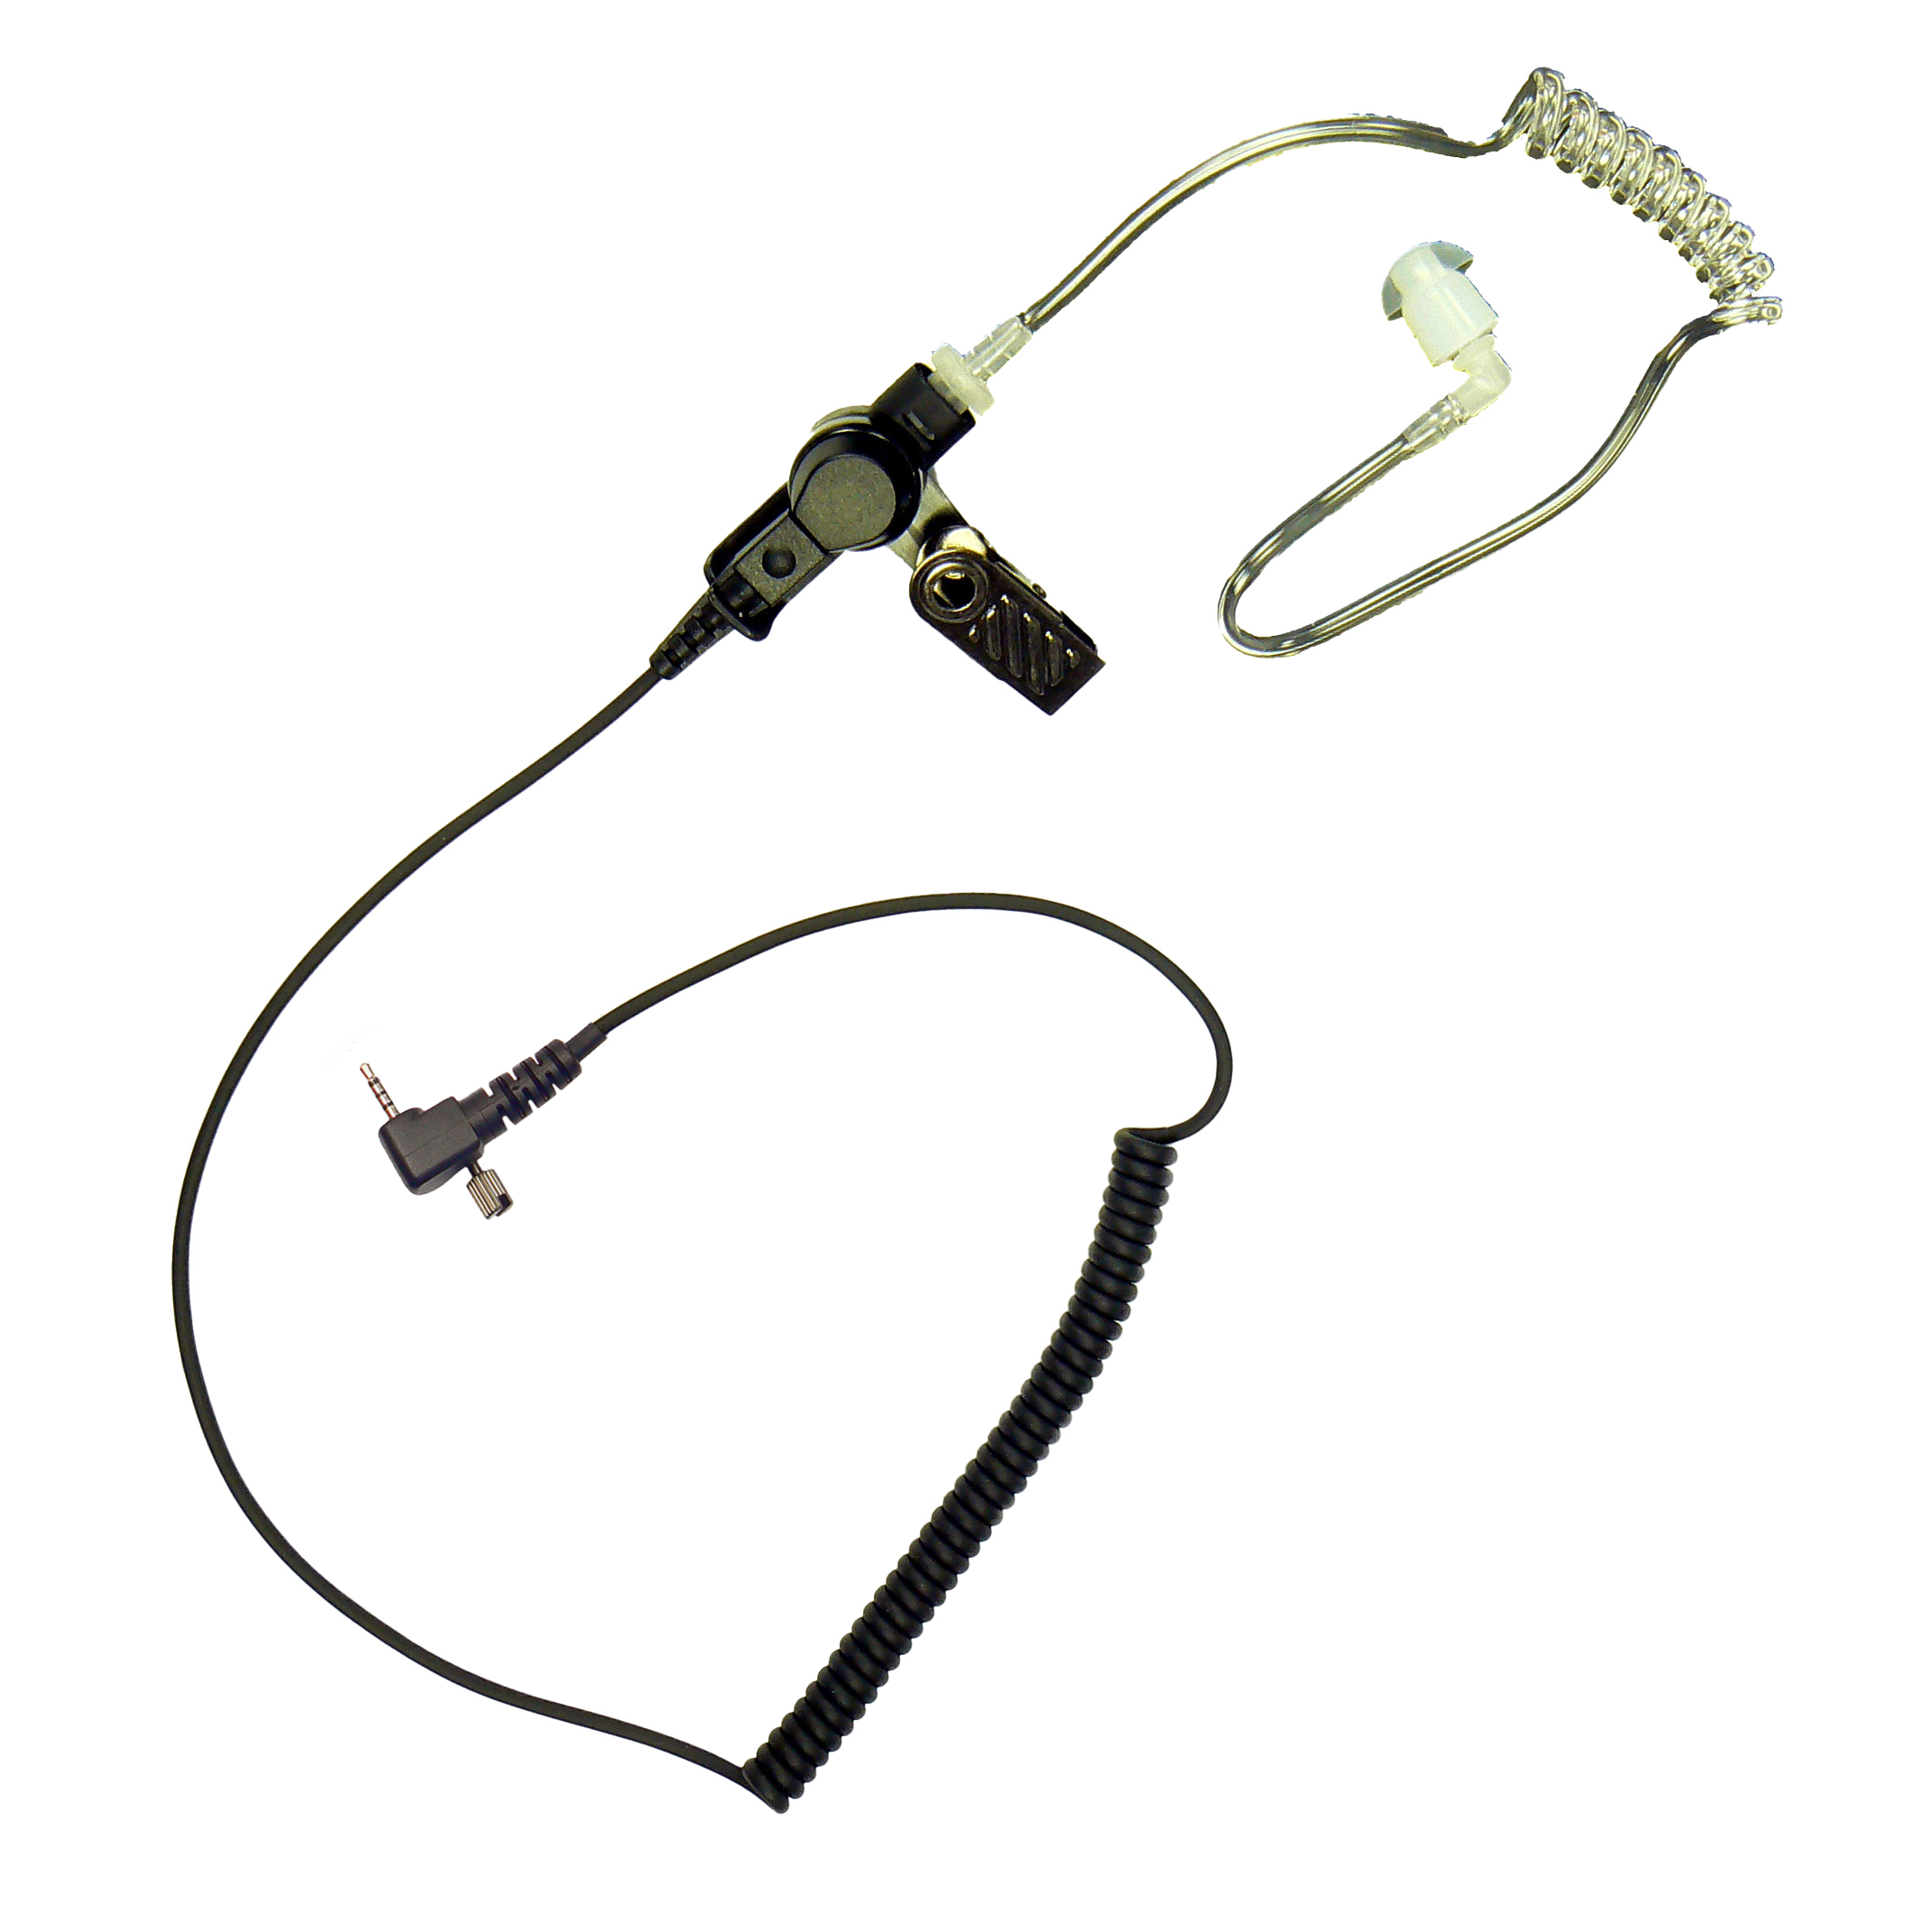 Acoustic tube Sepura radio earpiece with Single pin and screw jack